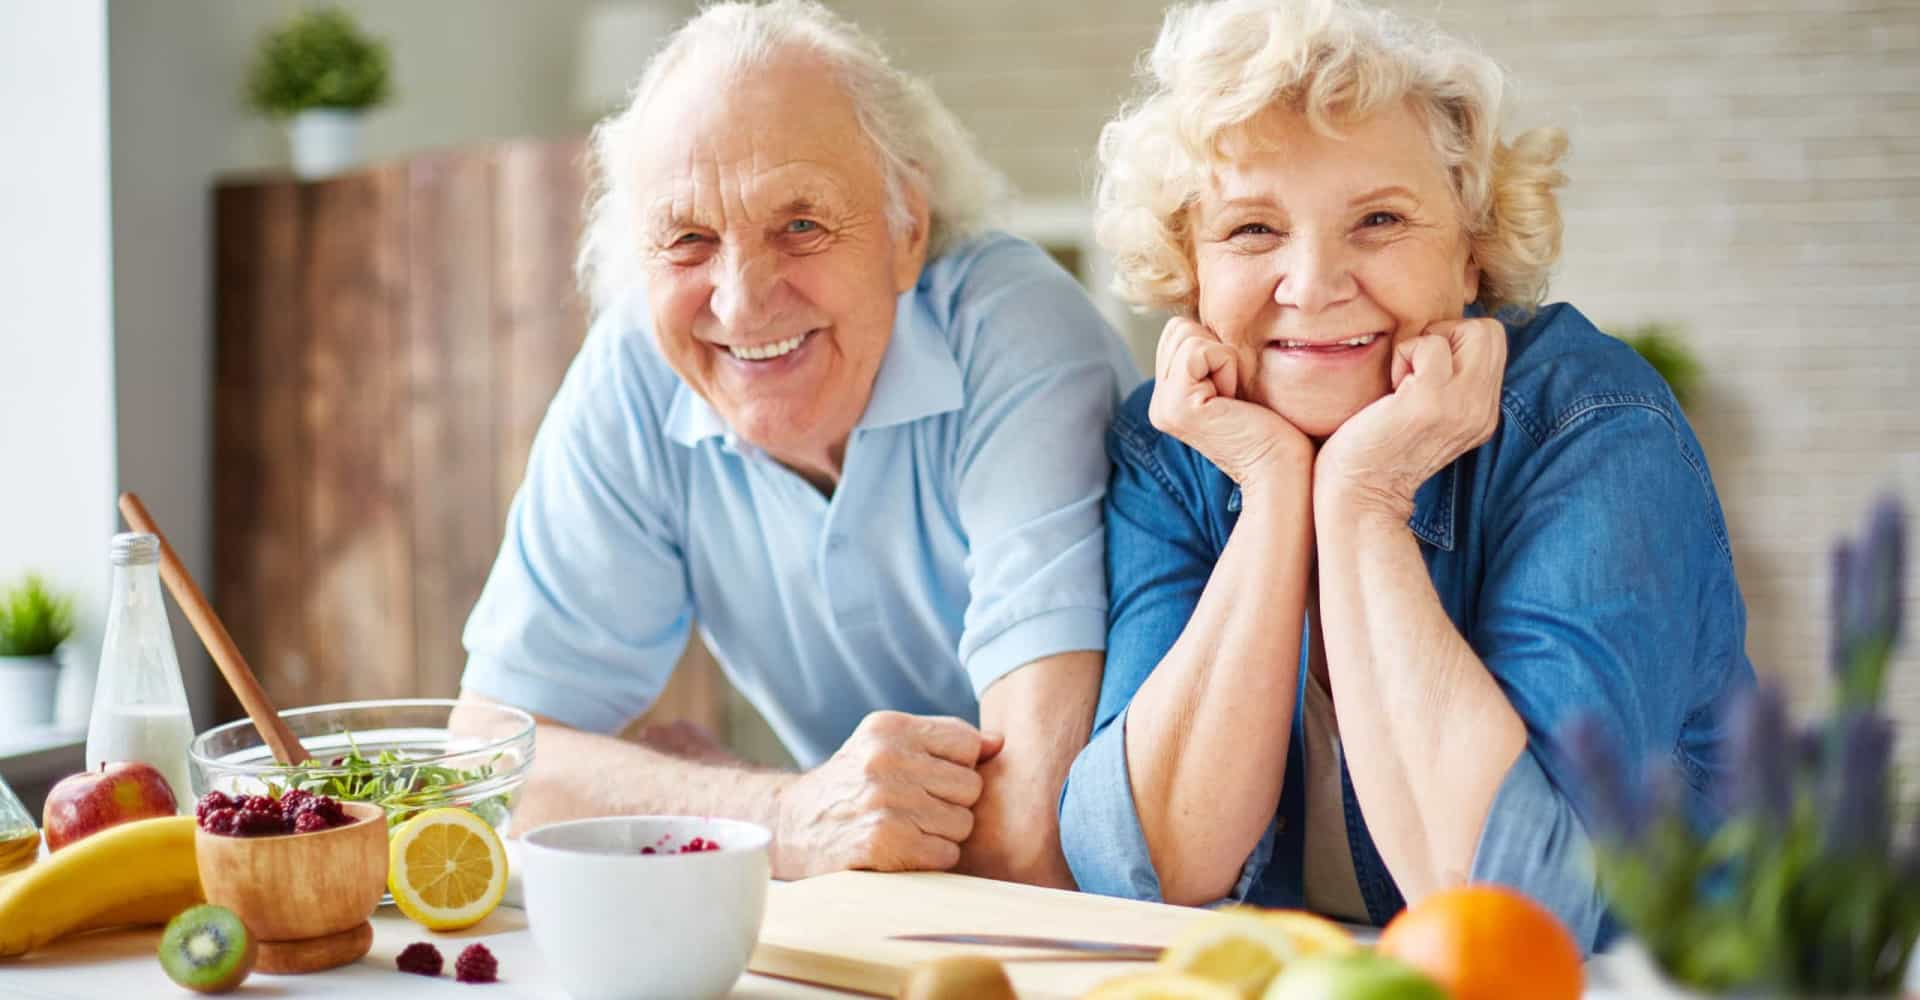 Here's how to make a home senior friendly